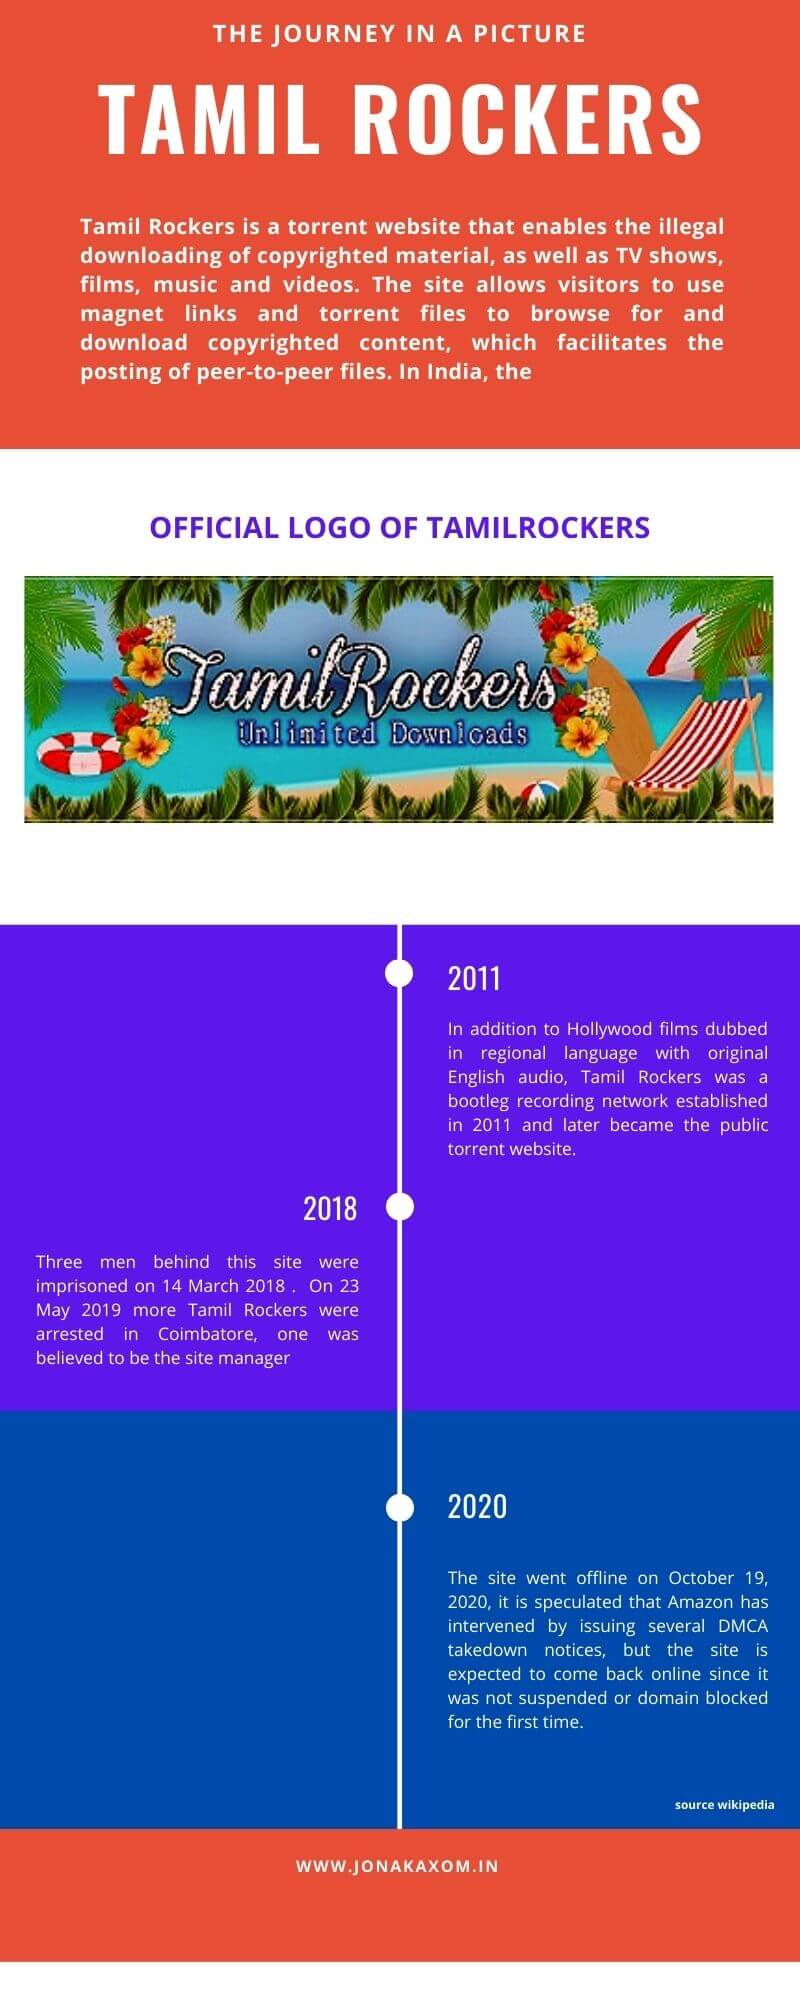 What is Tamil rockers movie download site? Infograph